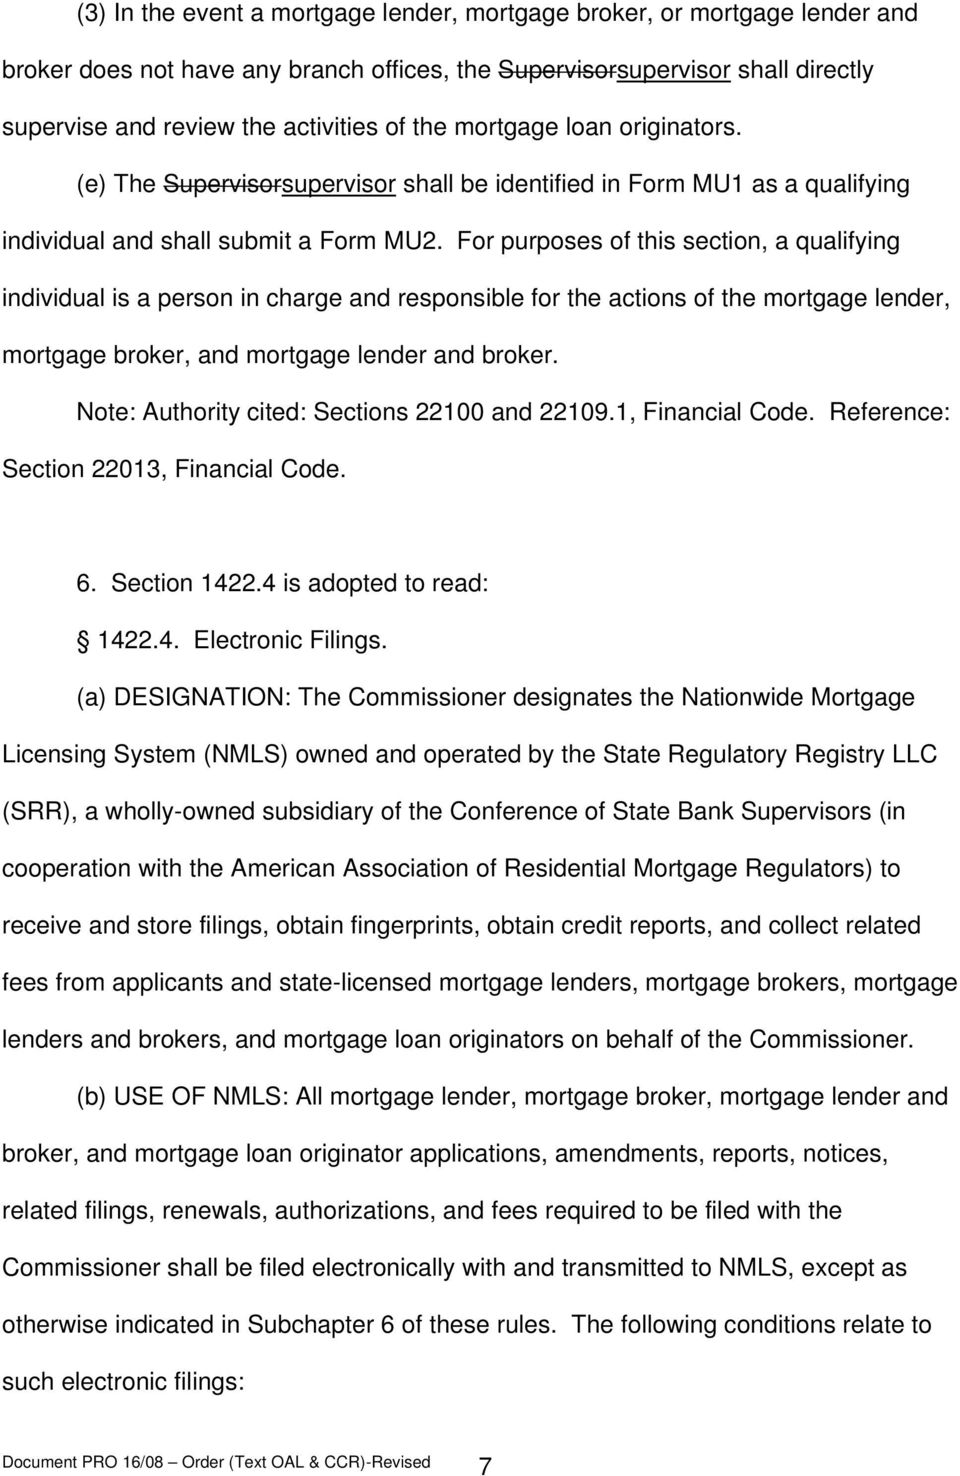 For purposes of this section, a qualifying individual is a person in charge and responsible for the actions of the mortgage lender, mortgage broker, and mortgage lender and broker.